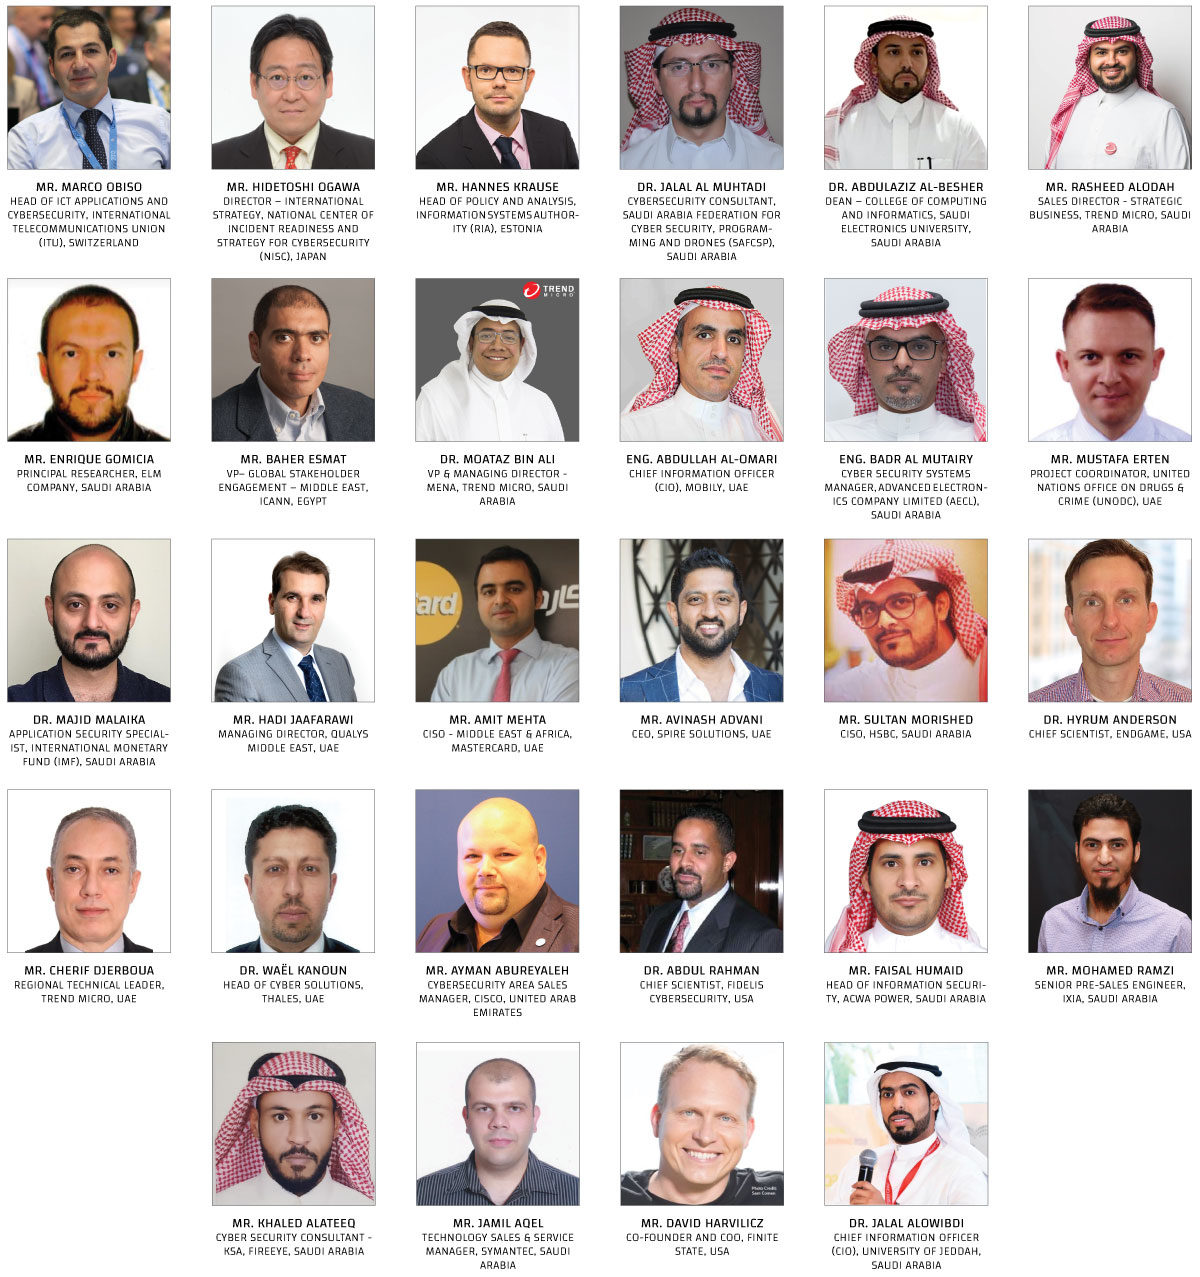 https://saudiiot.com/wp-content/uploads/2019/04/cdsspeakers-1200x1277.jpg